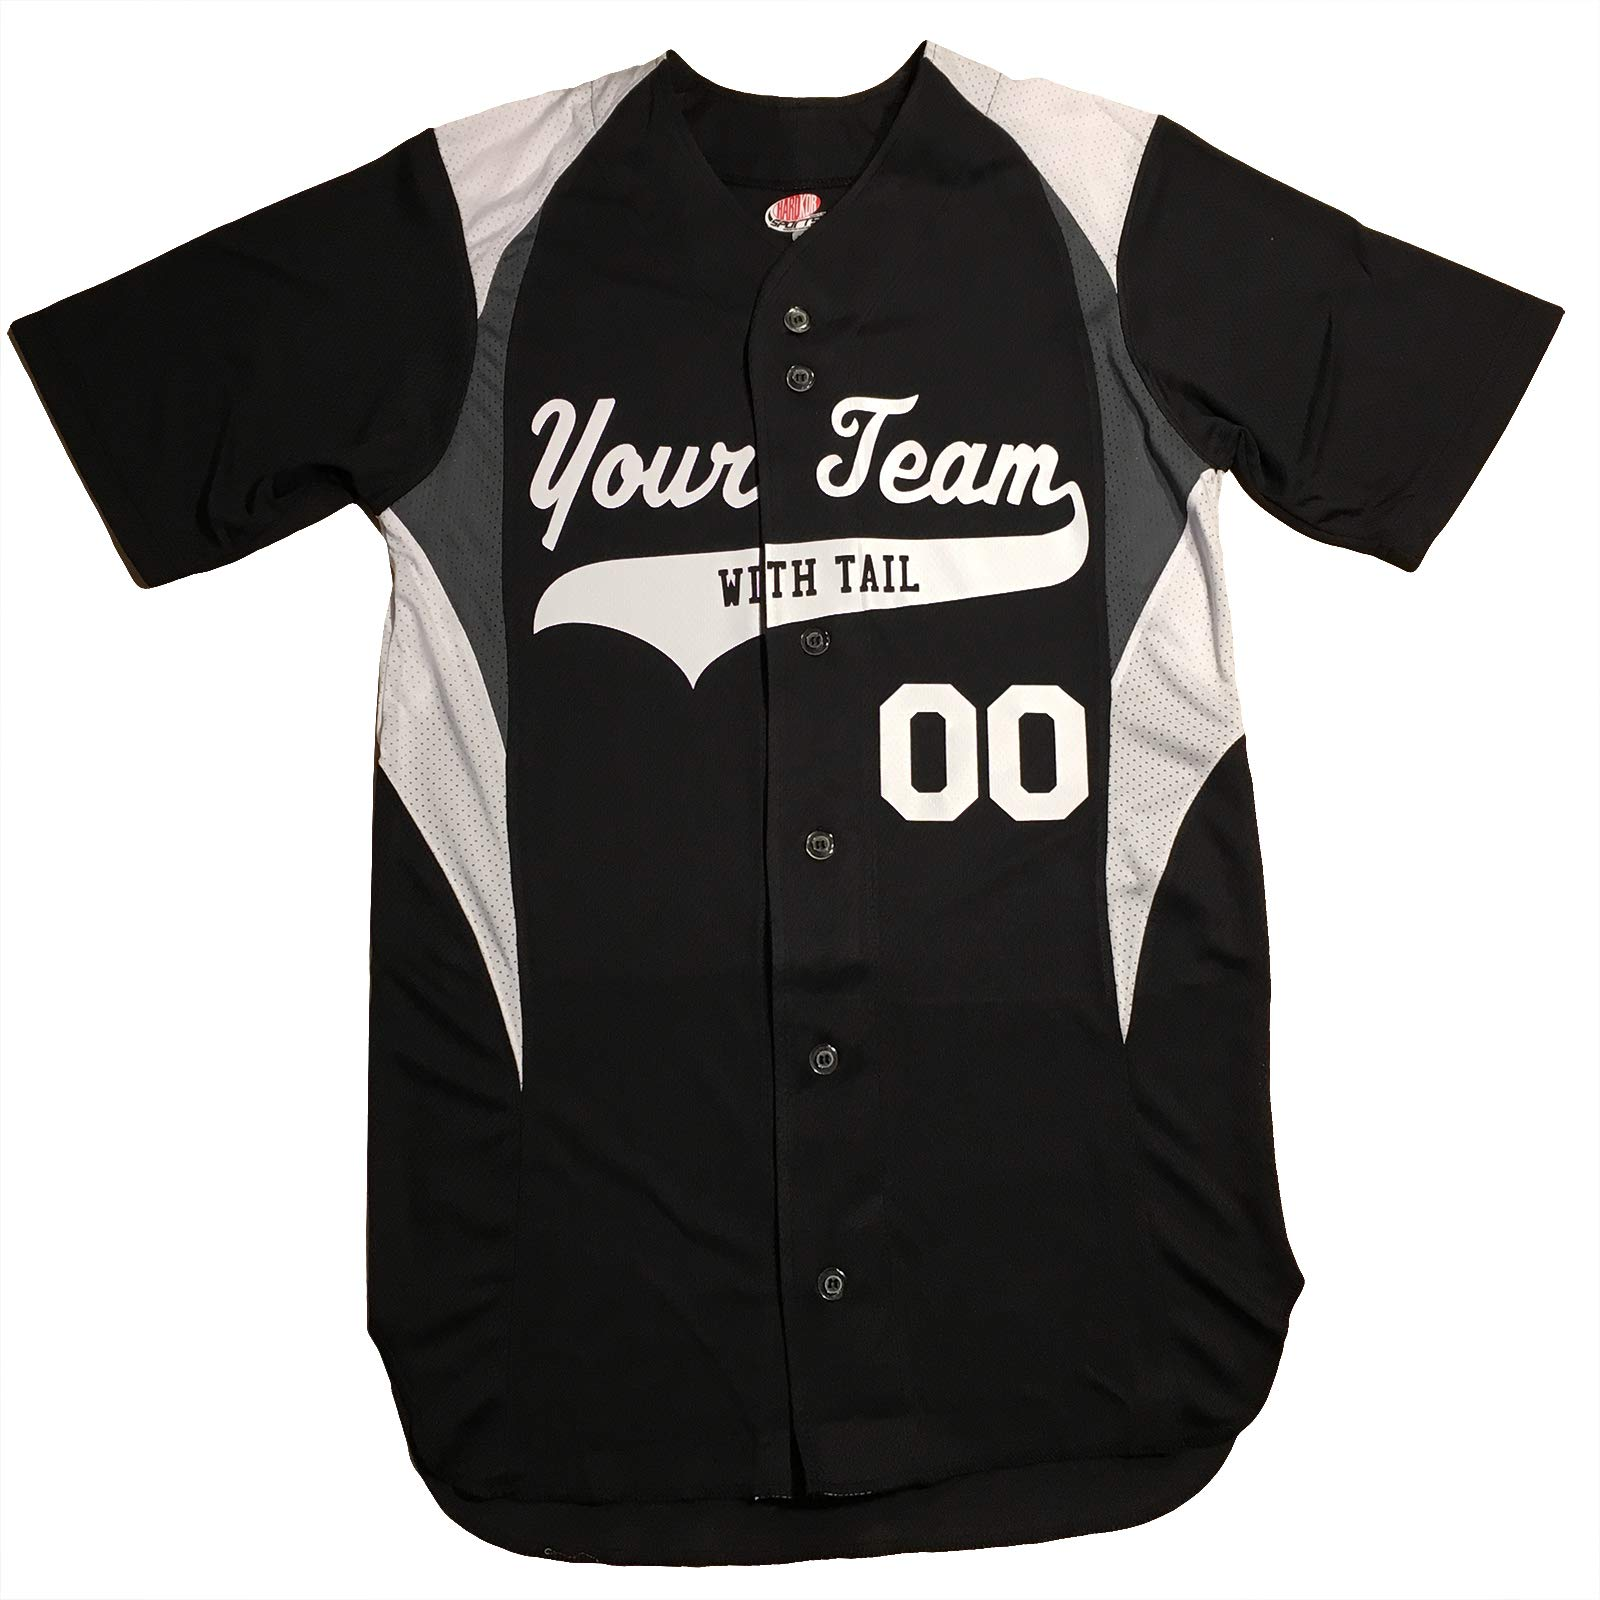 7eeb831e5 3 Color Button Down Custom Baseball Jersey with Your Names and Numbers  product image